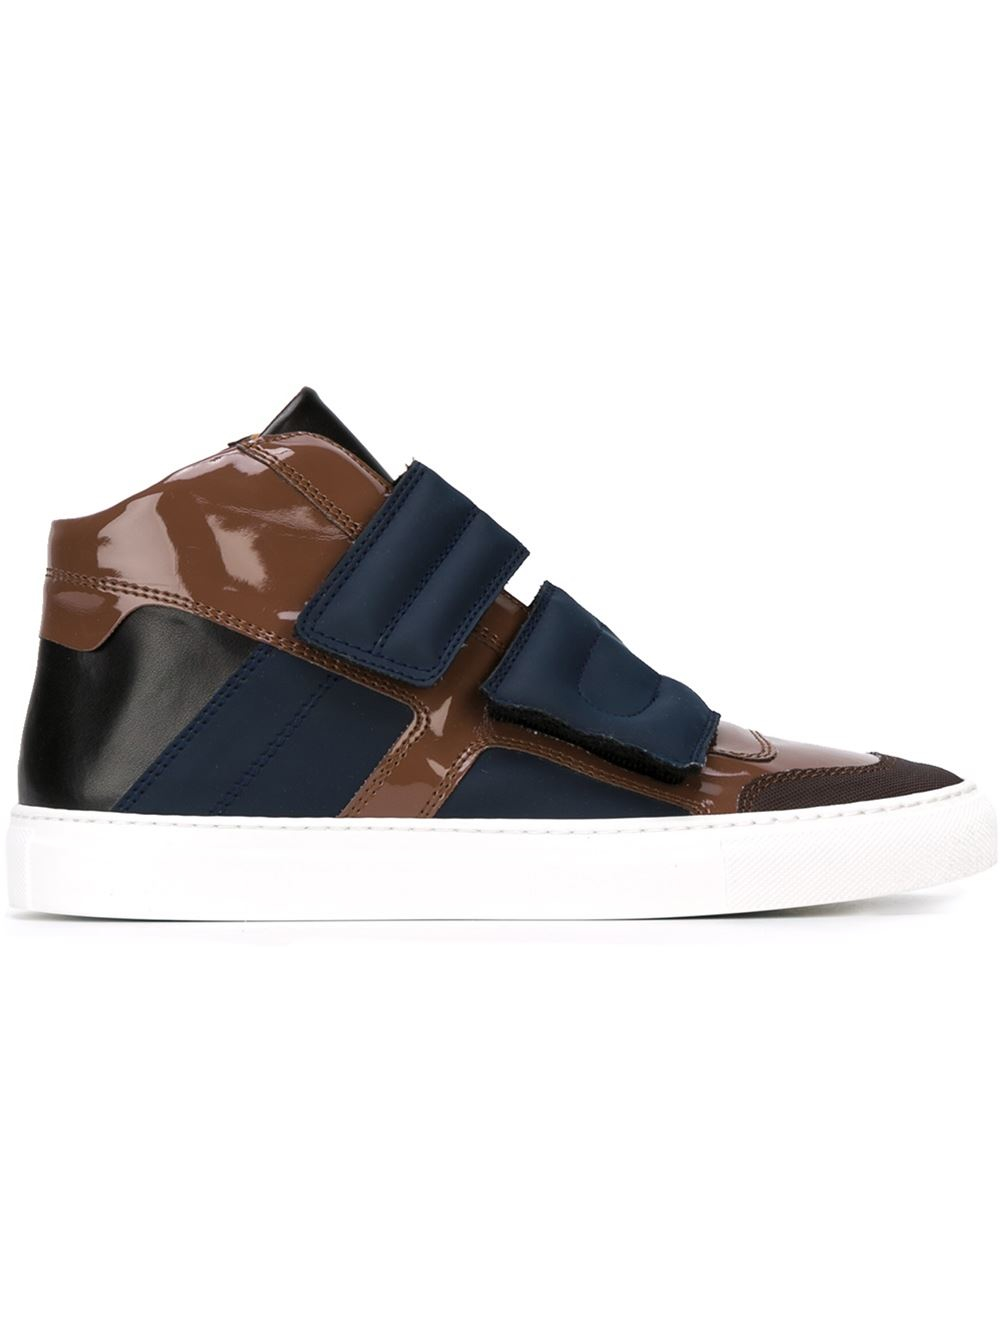 mm6 by maison martin margiela velcro strap hi top sneakers in blue brown lyst. Black Bedroom Furniture Sets. Home Design Ideas